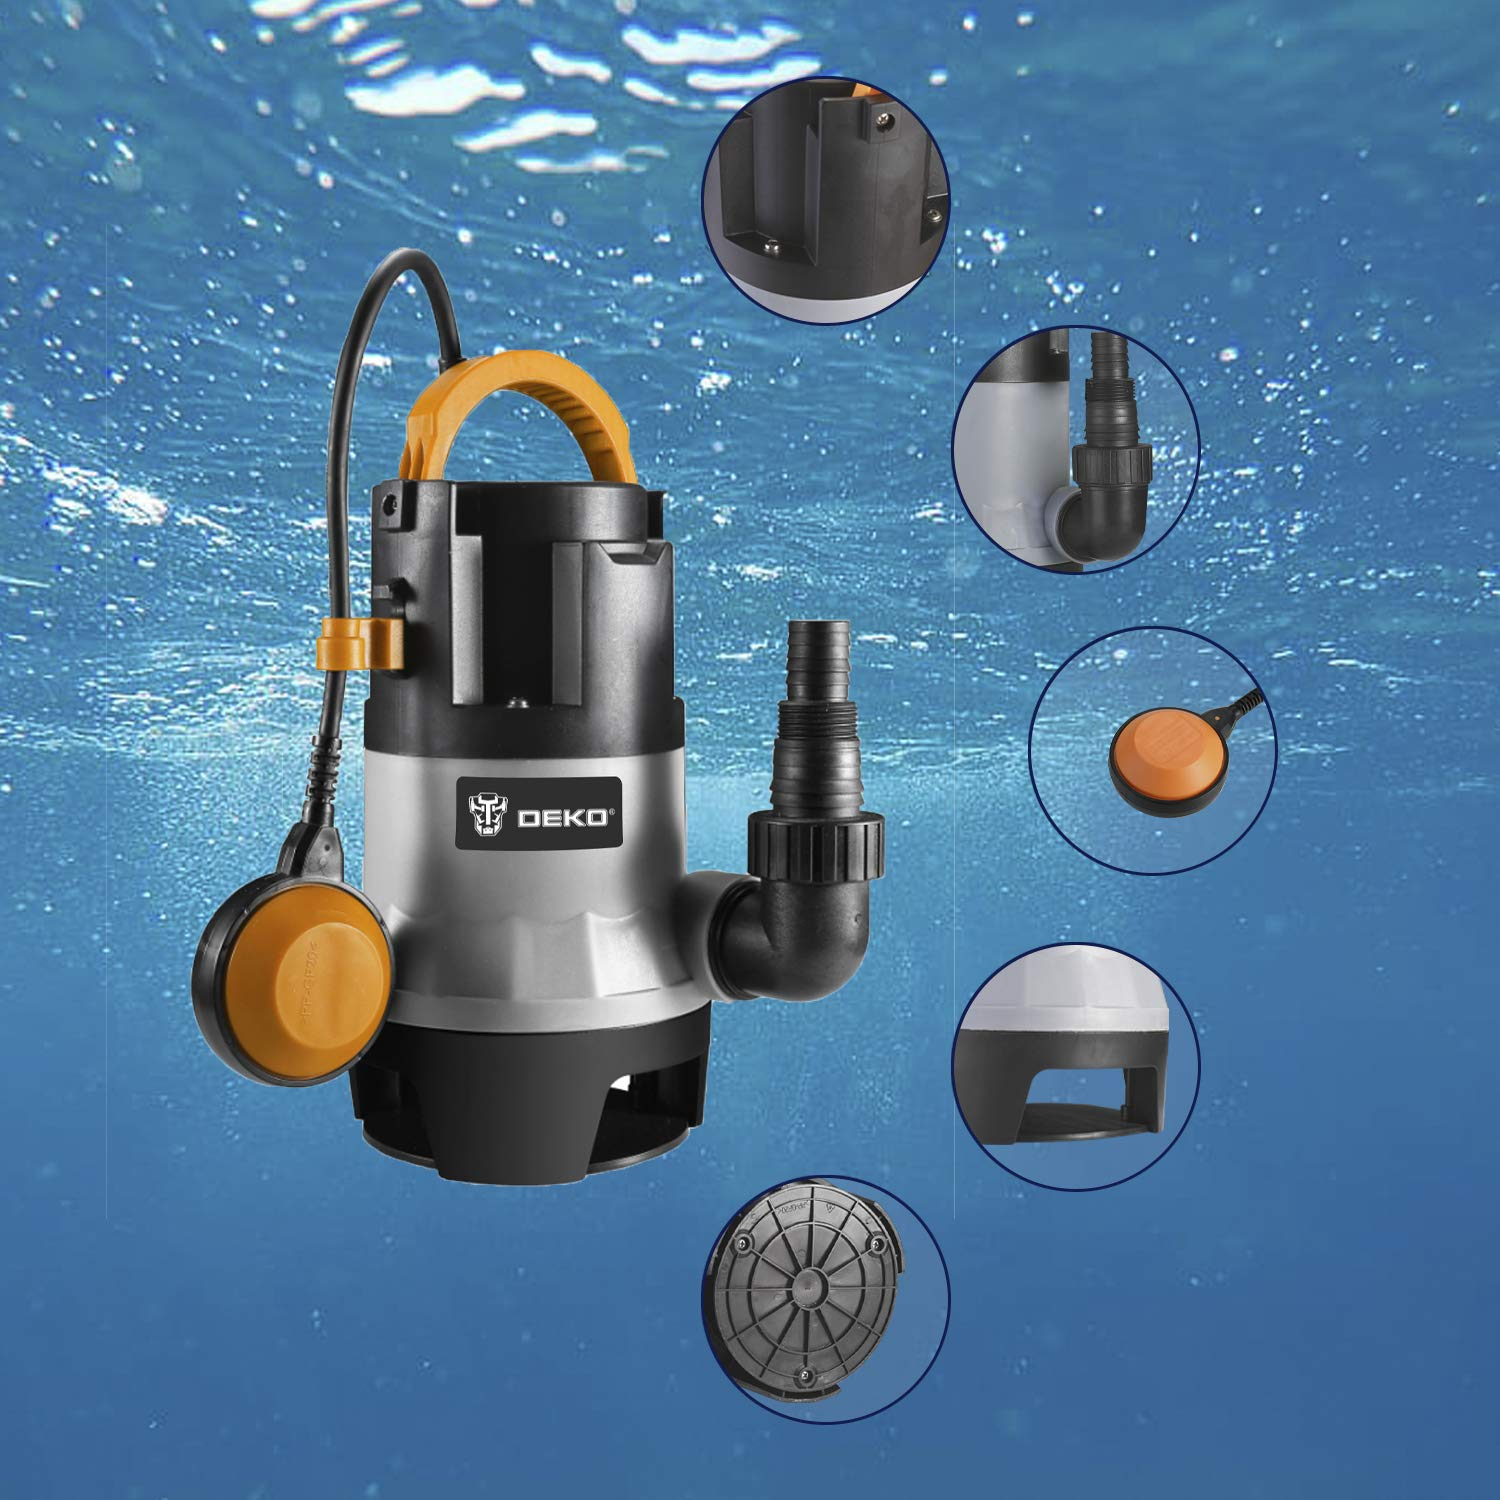 DEKO Sump Pump 1HP 3302GPH 750W Submersible Clean/Dirty Water Pump Swimming Pool Garden Tub Pond Flood Drain w/Float Switch and Long 16ft Cable by DEKO (Image #7)